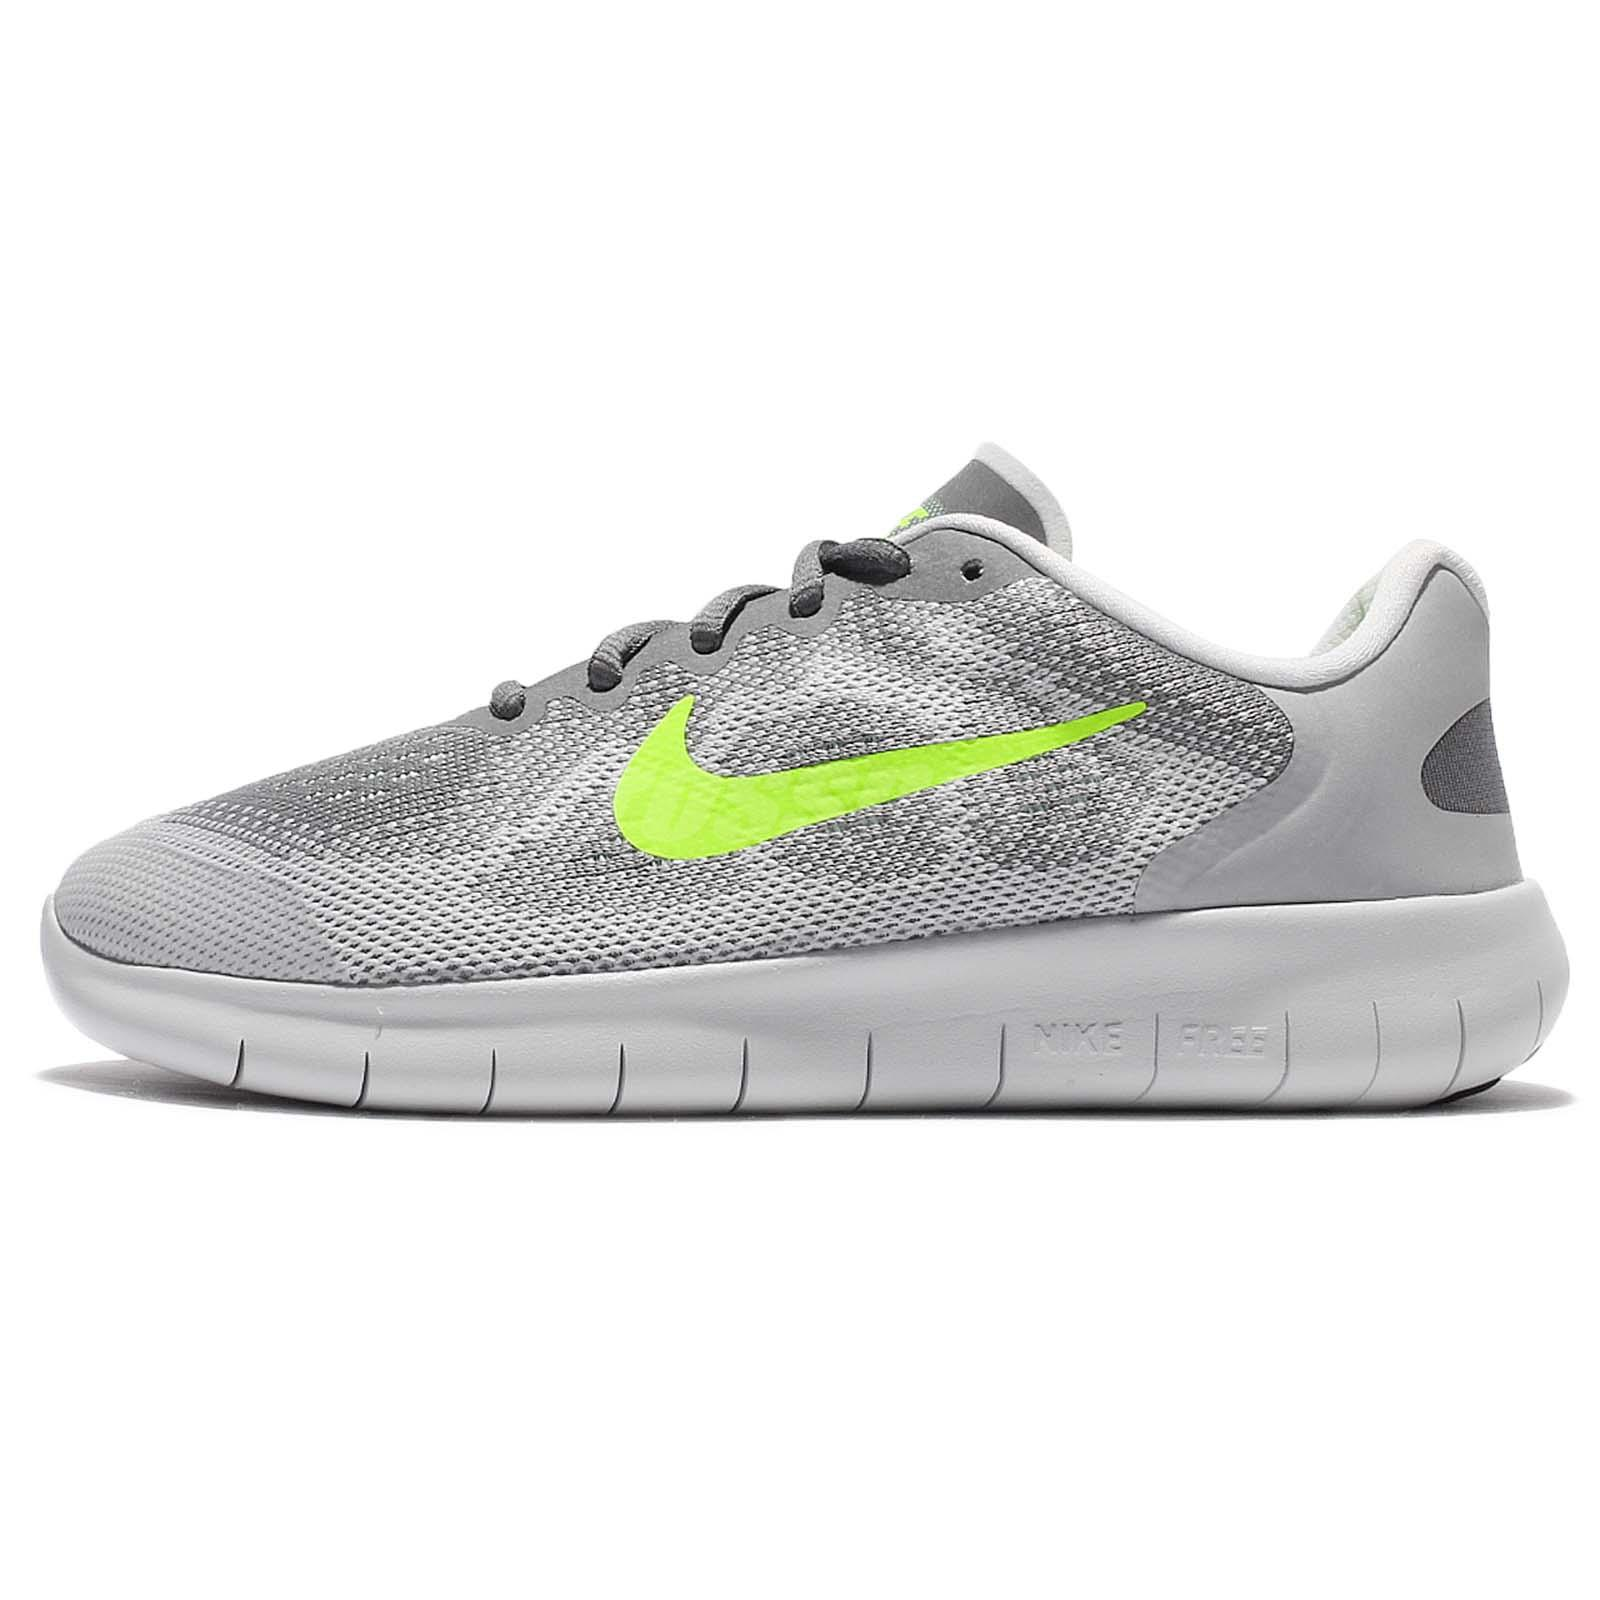 172a022fe21c9 Nike Free RN 2017 GS Run Grey Green Kids Running Shoes Sneakers 904255-004